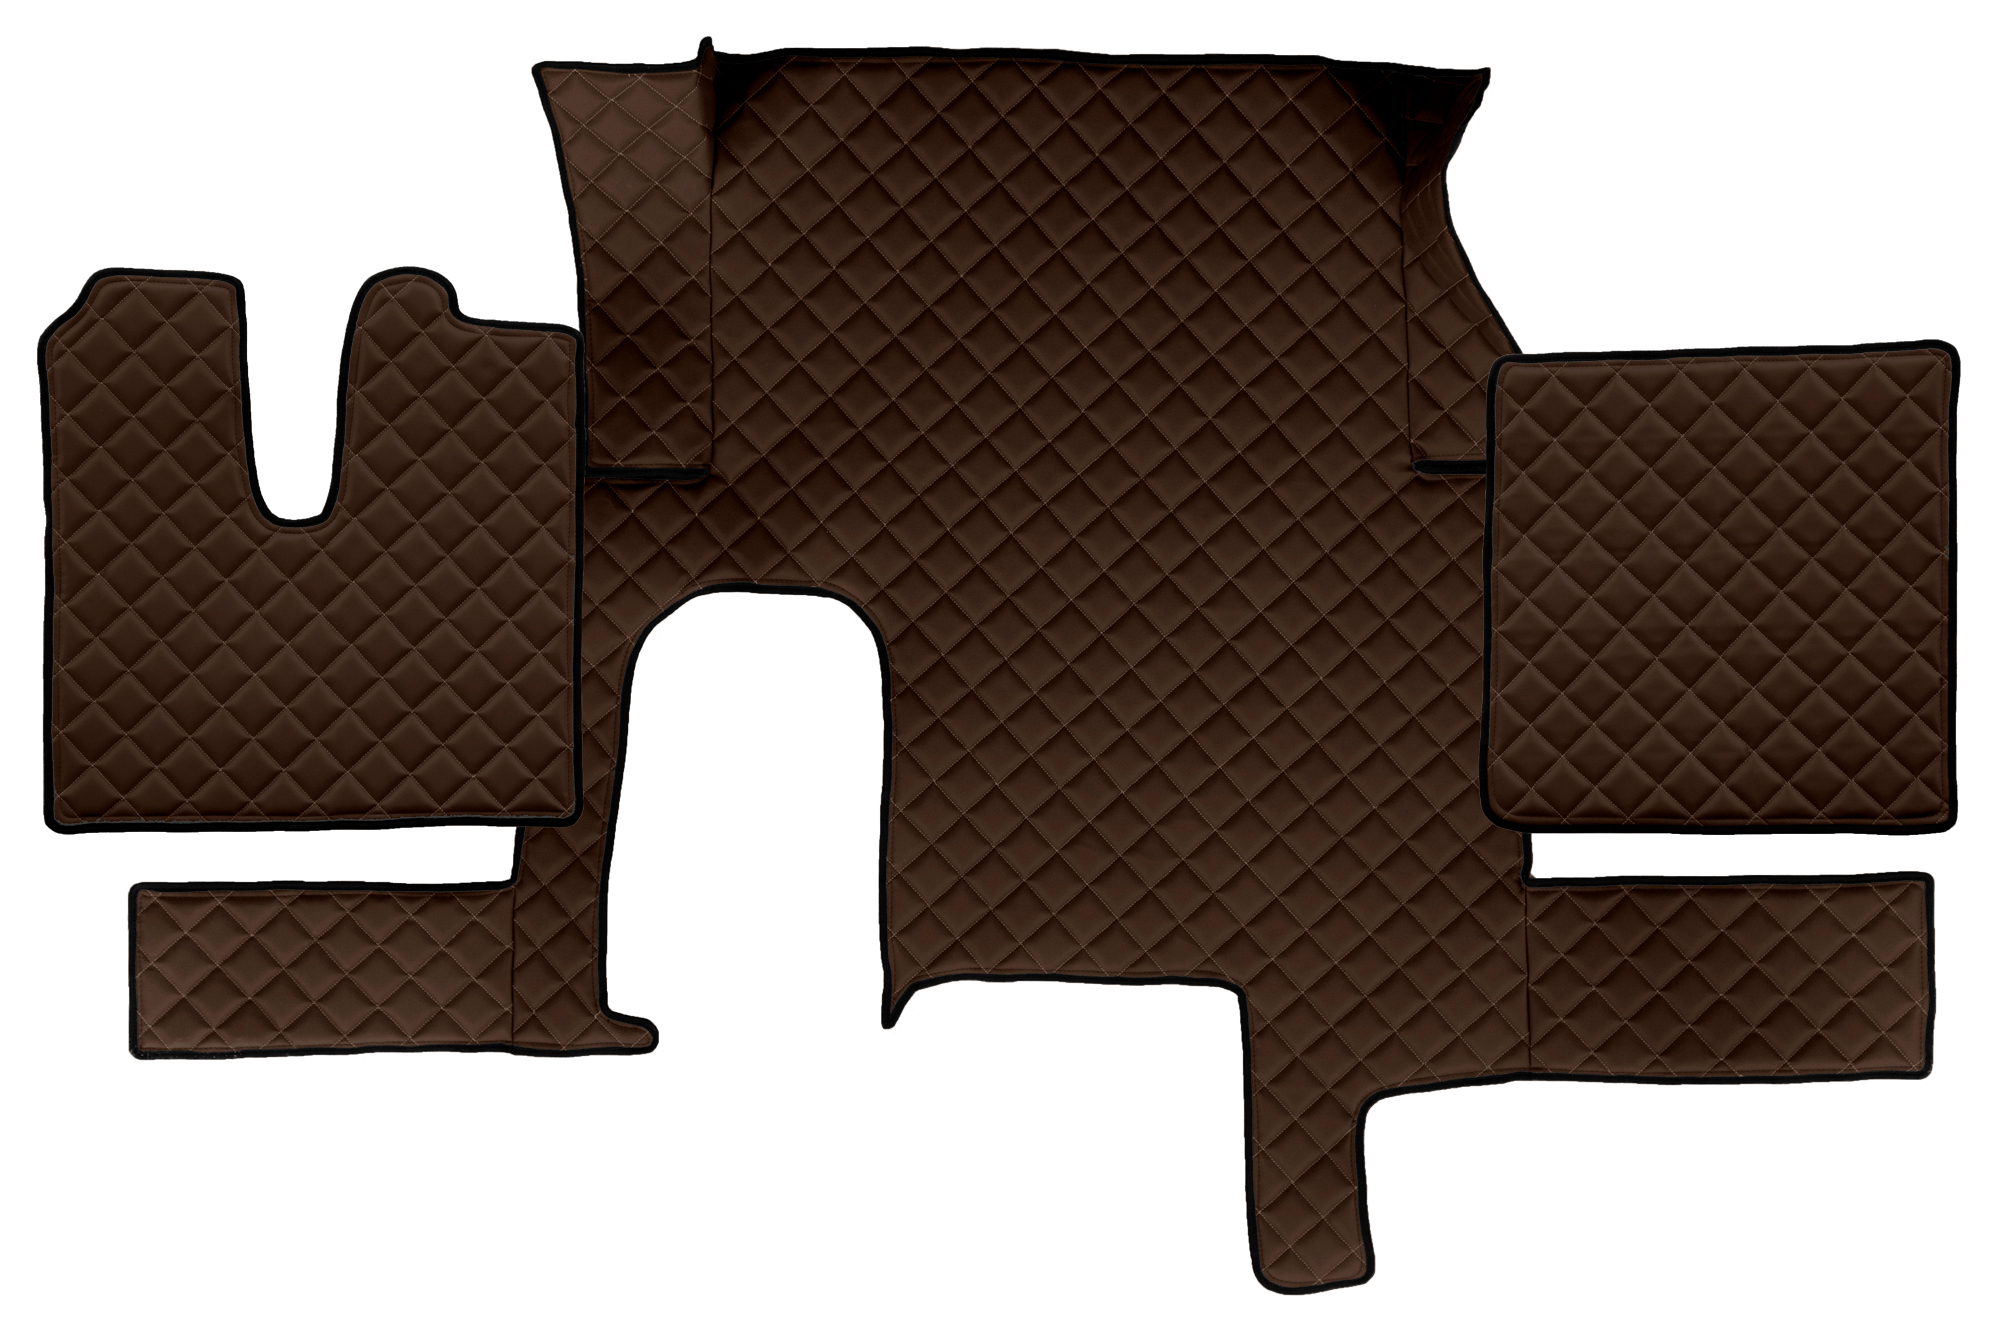 Fl29 Full Coverage Floor Mats Eco Leather Man Tgx